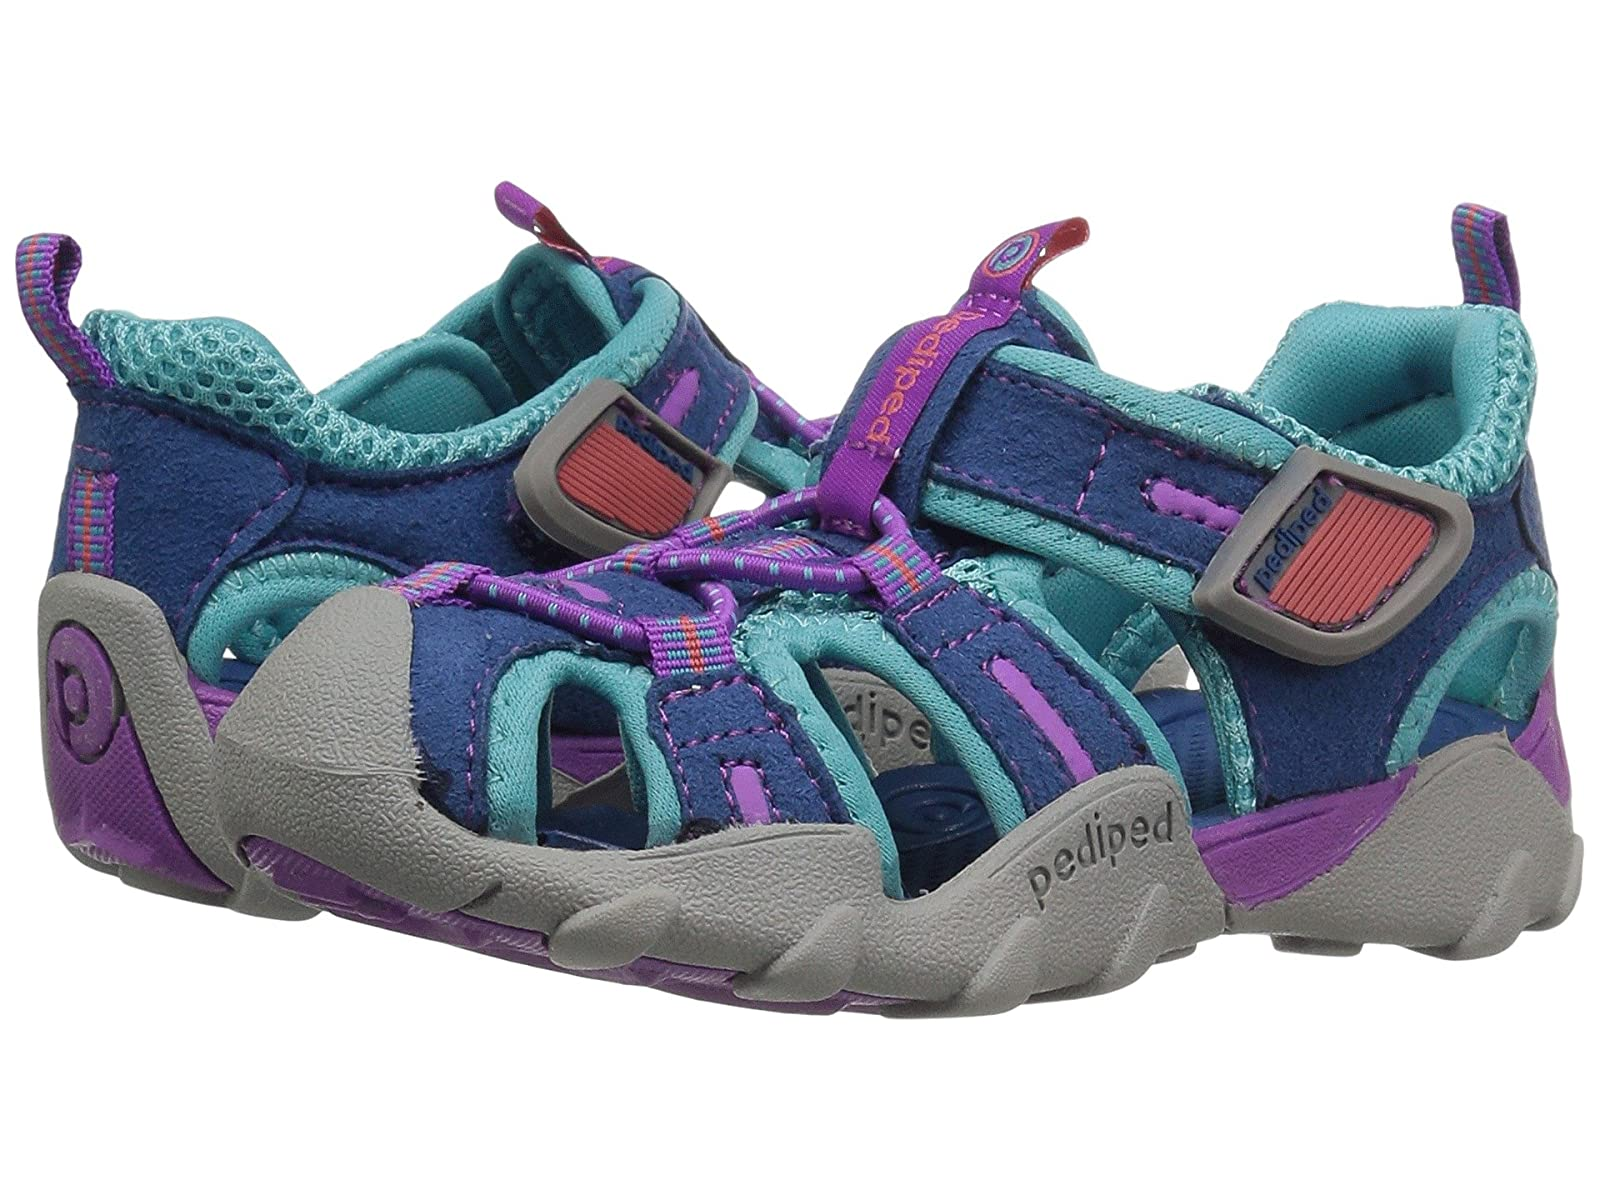 pediped Canyon Flex (Toddler/Little Kid/Big Kid)Atmospheric grades have affordable shoes